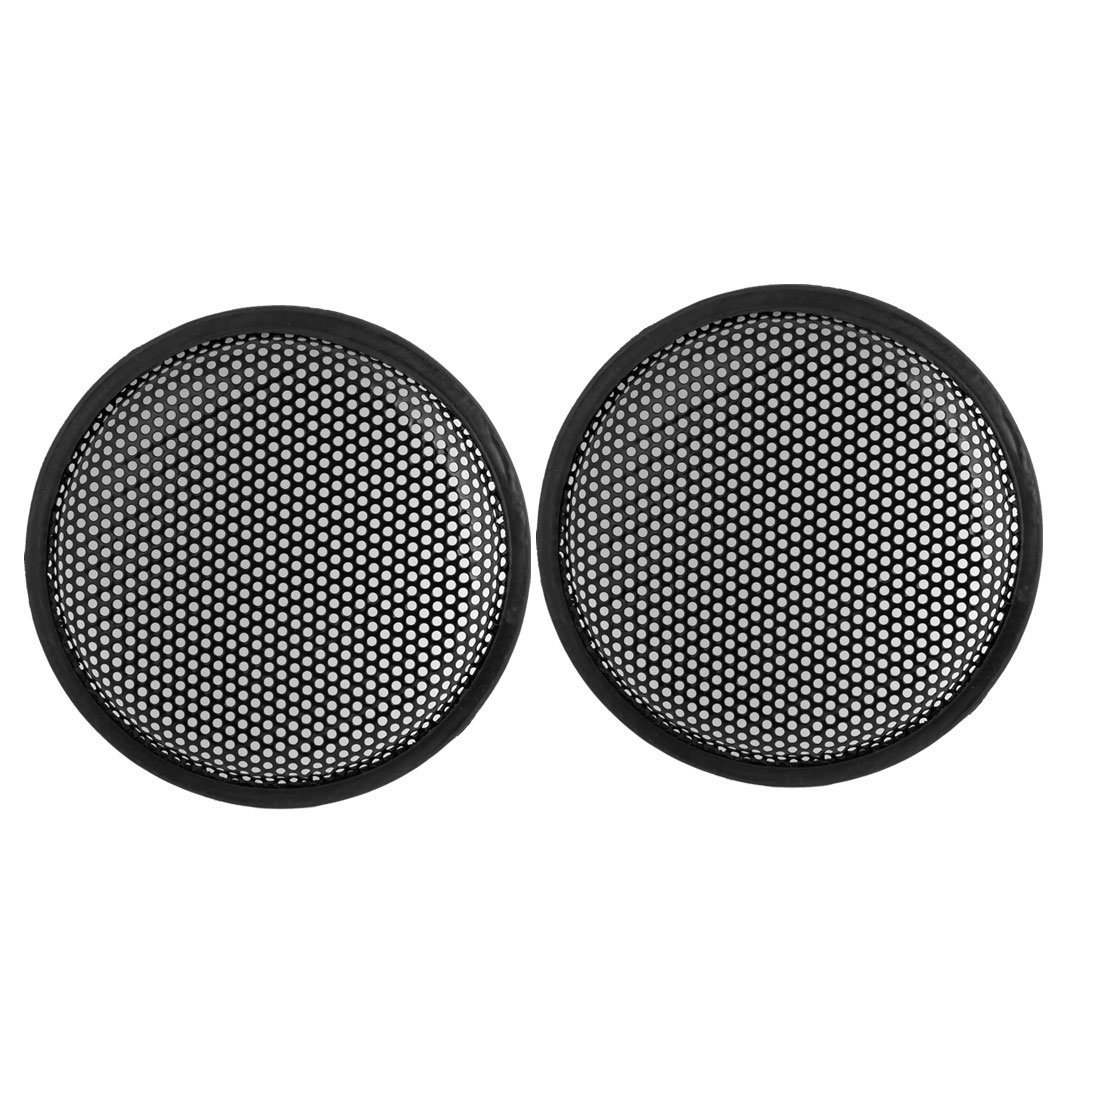 sourcingmap® 8.5' Dia Metal Mesh Round Car Woofer Cover Speaker Grill Black 2 Pcs sourcing map a14031500ux0091